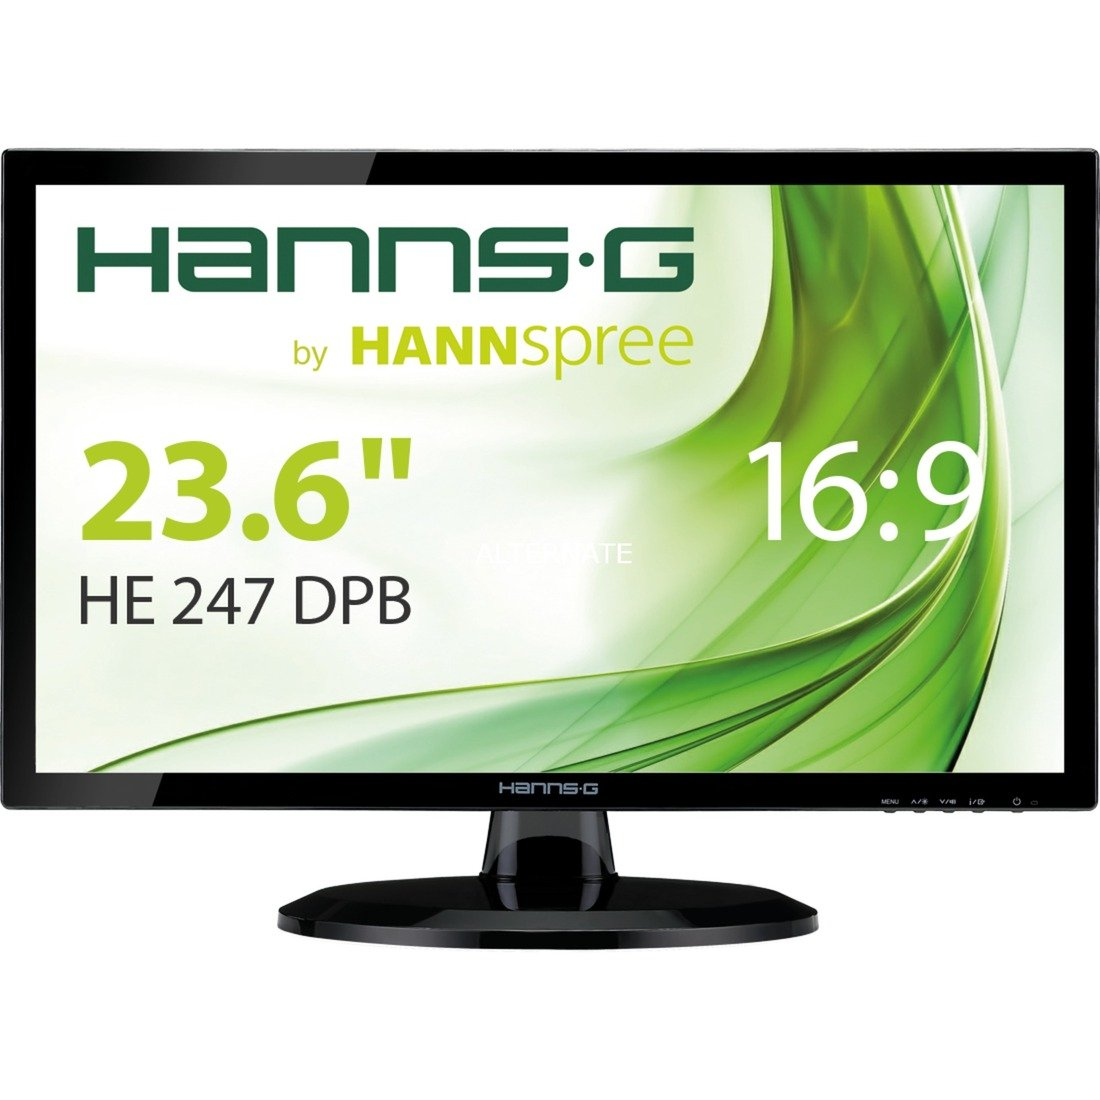 "Hanns.G HE247DPB LED display 59,9 cm (23.6"") Full HD Negro, Monitor LED"